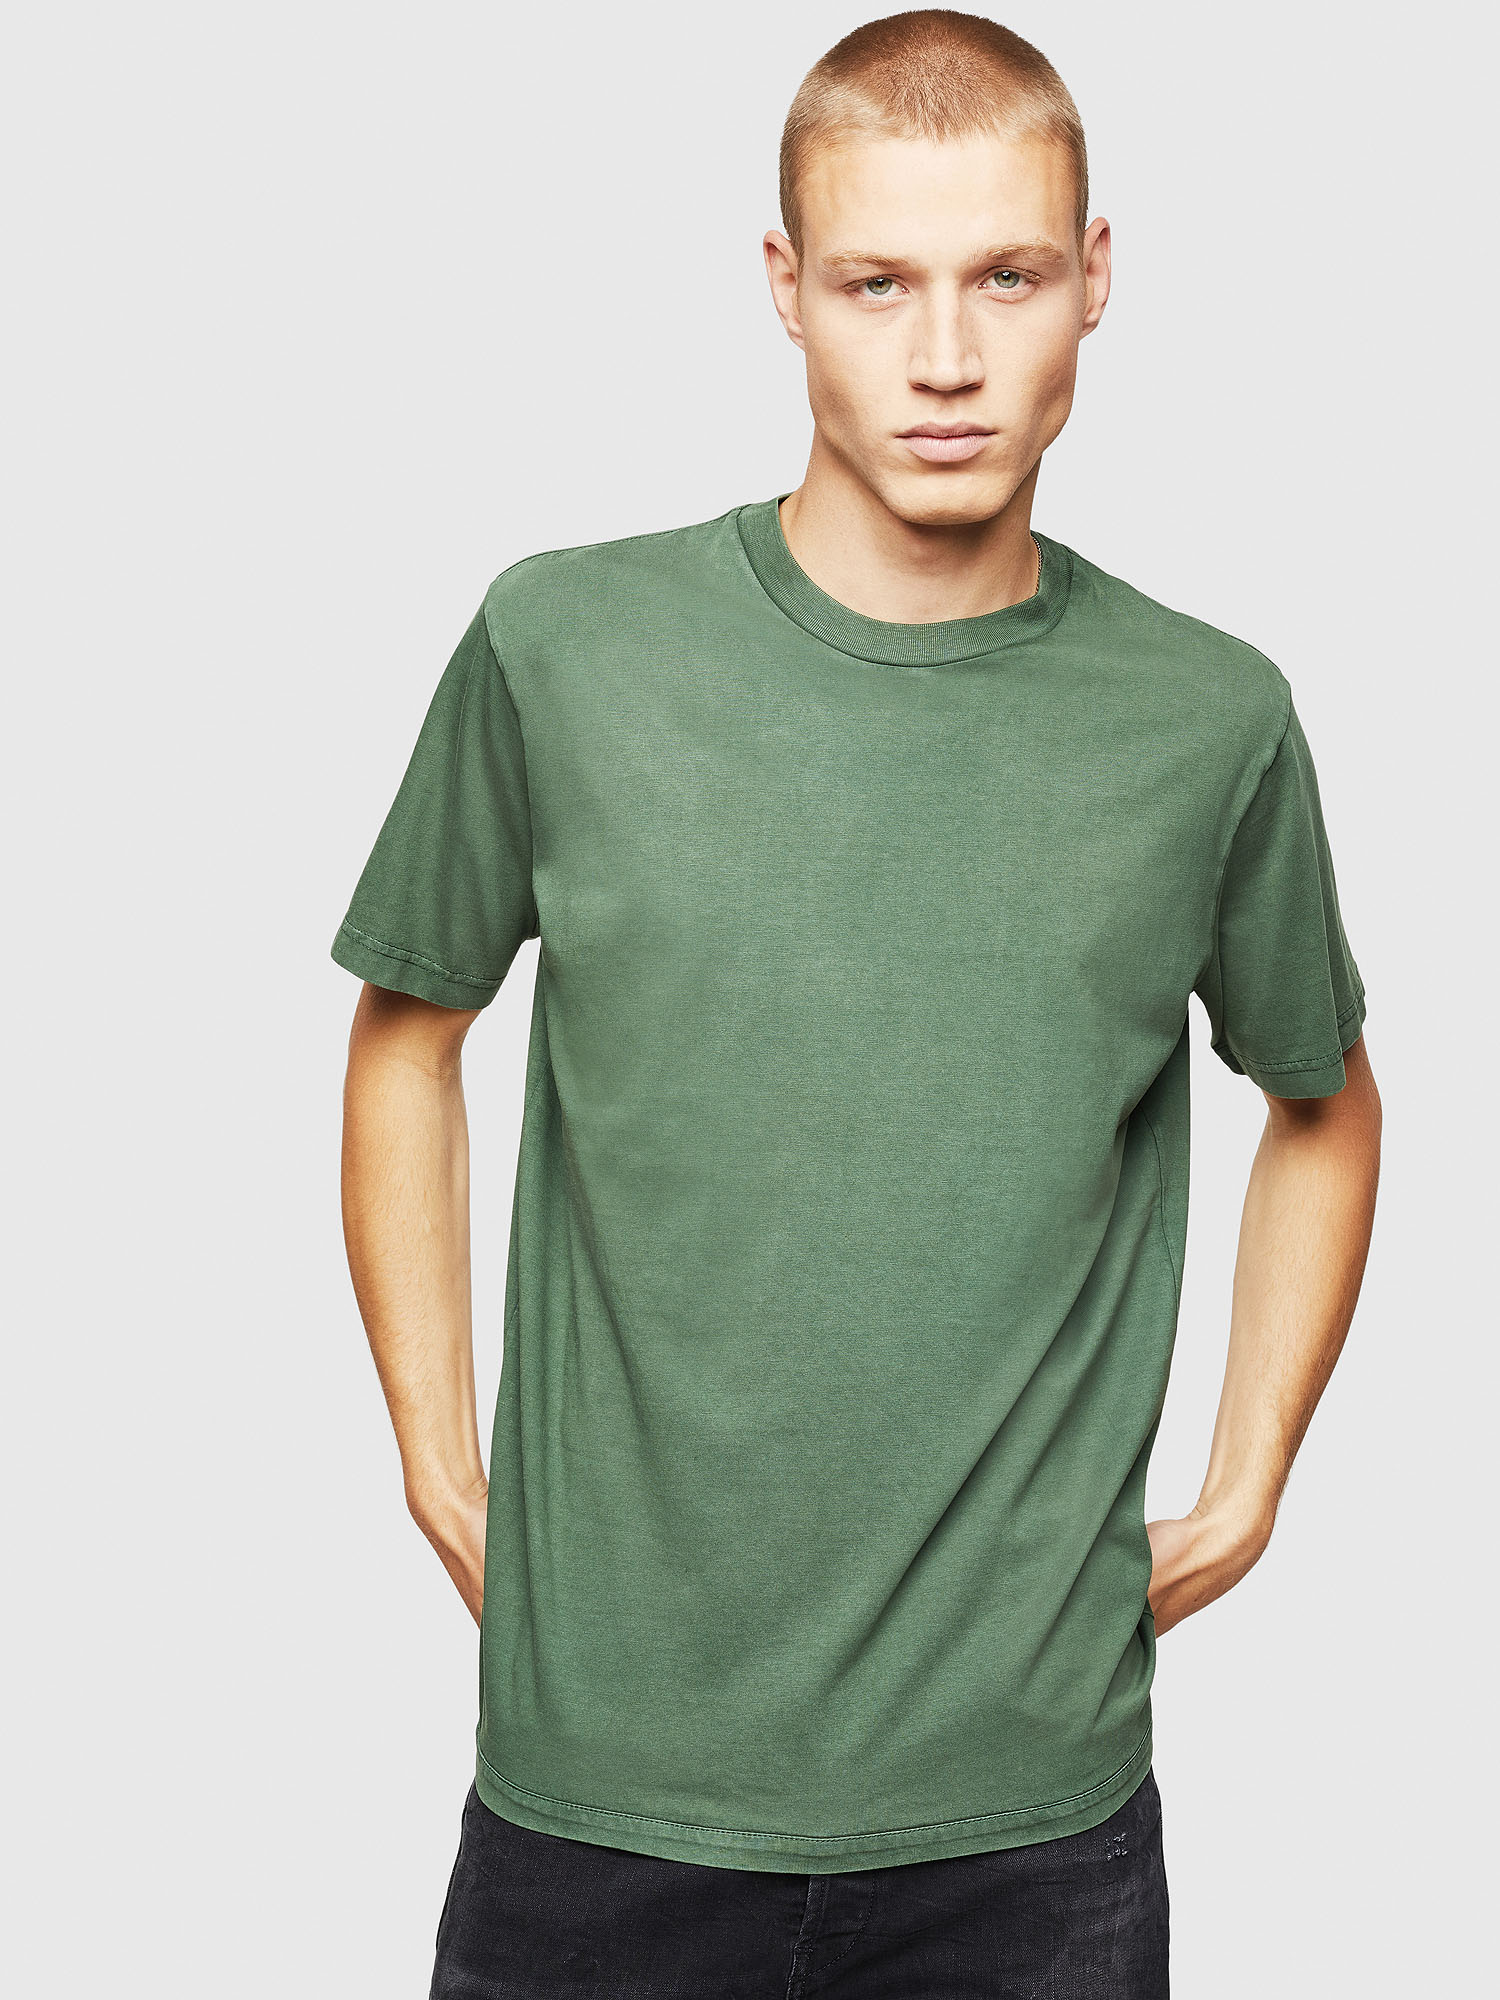 Diesel - T-THURE,  - T-Shirts - Image 1